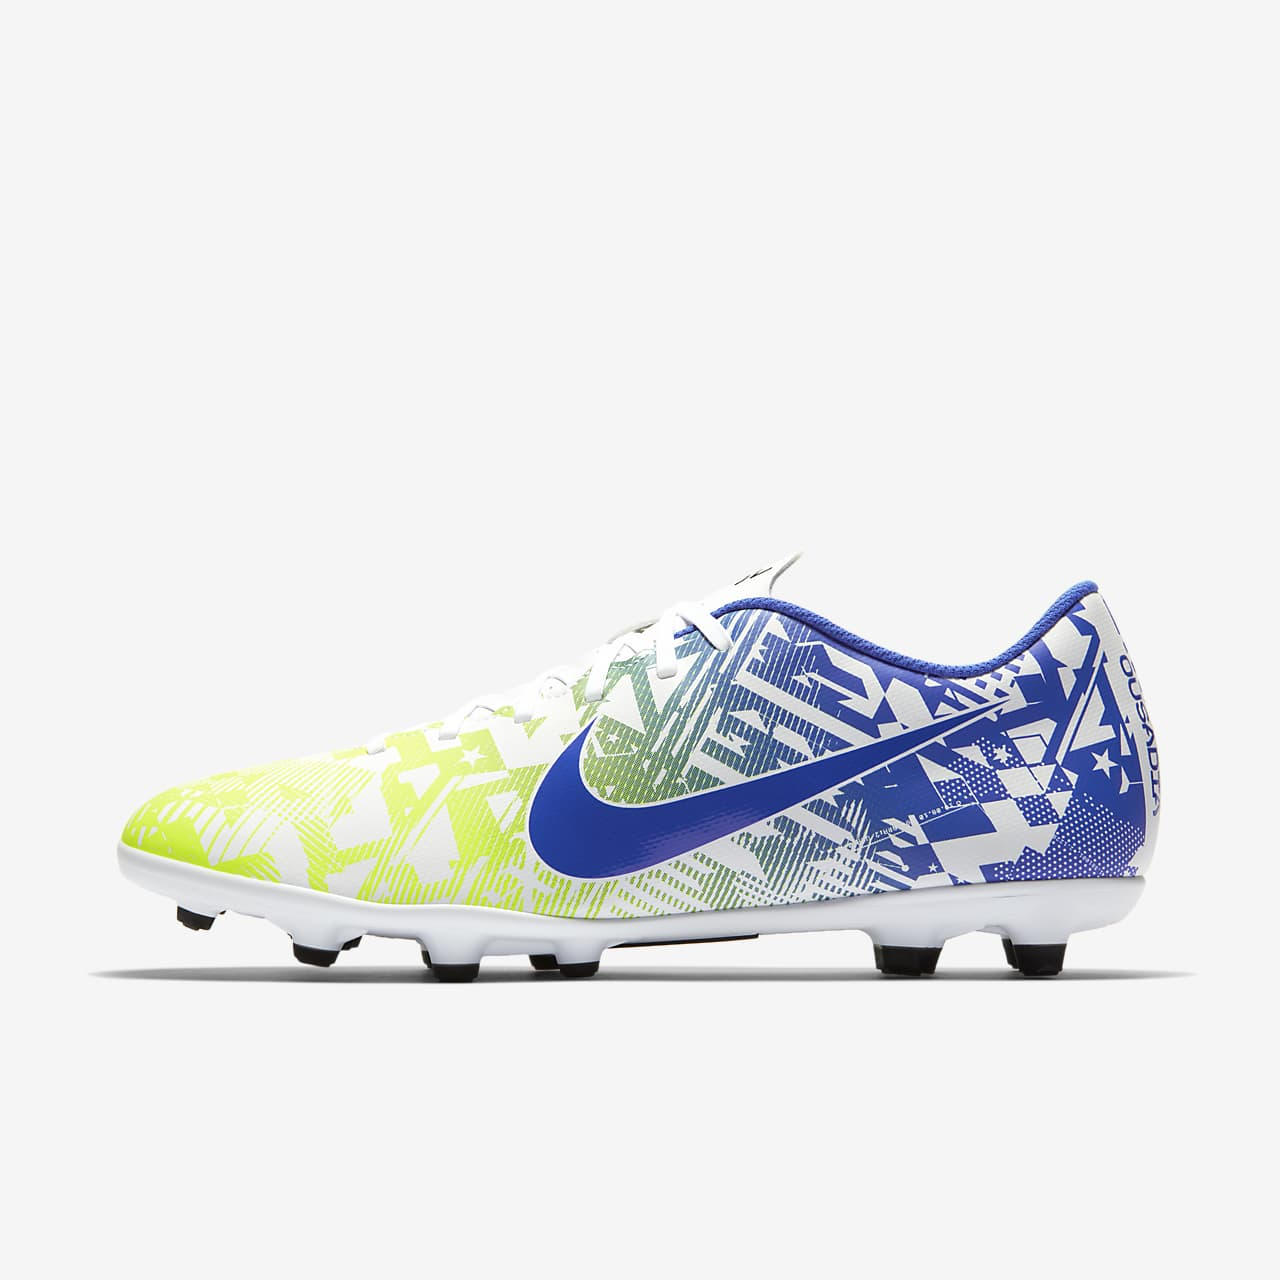 Nike Mercurial Vapor 13 Club Neymar Jr. MG 多種場地英式足球釘鞋